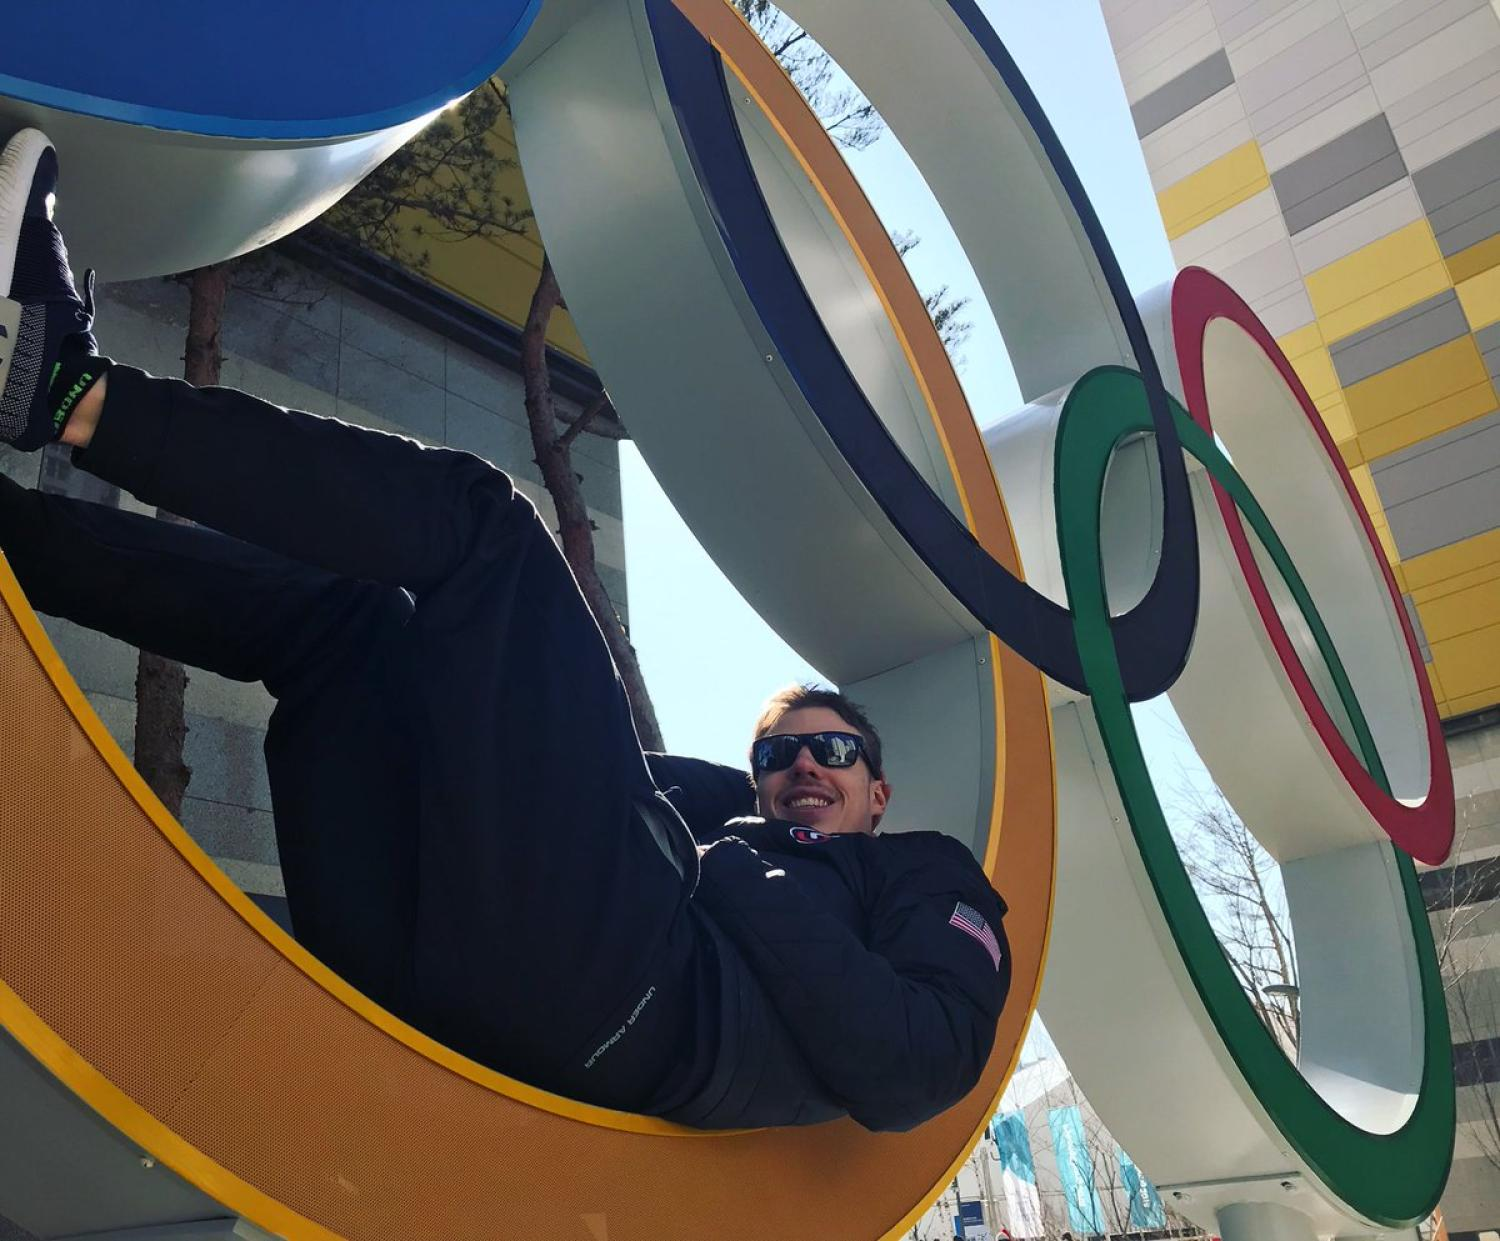 Brian Hansen sits in the Olympic rings